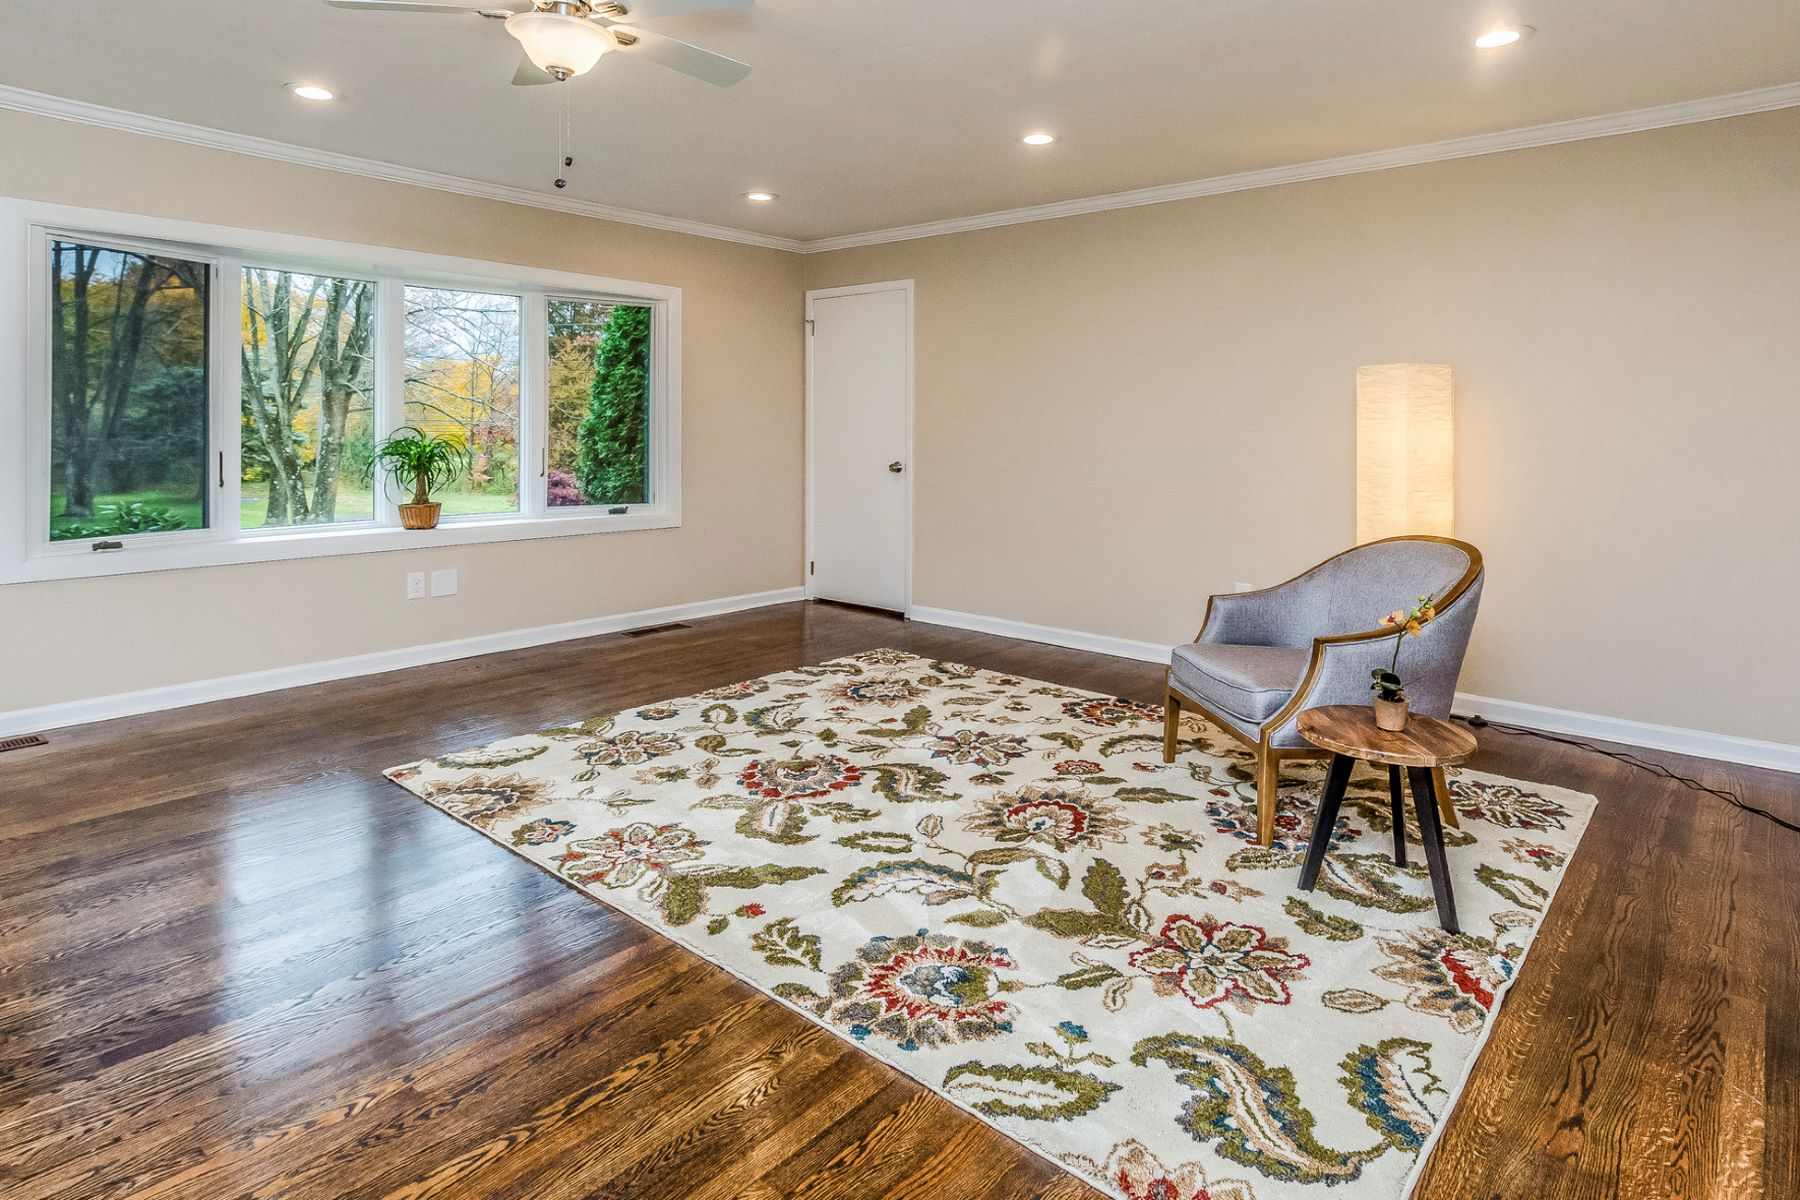 Additional photo for property listing at Beautifully Renovated Expanded Ranch 2 Winding Brook Way, Titusville, New Jersey 08560 United States